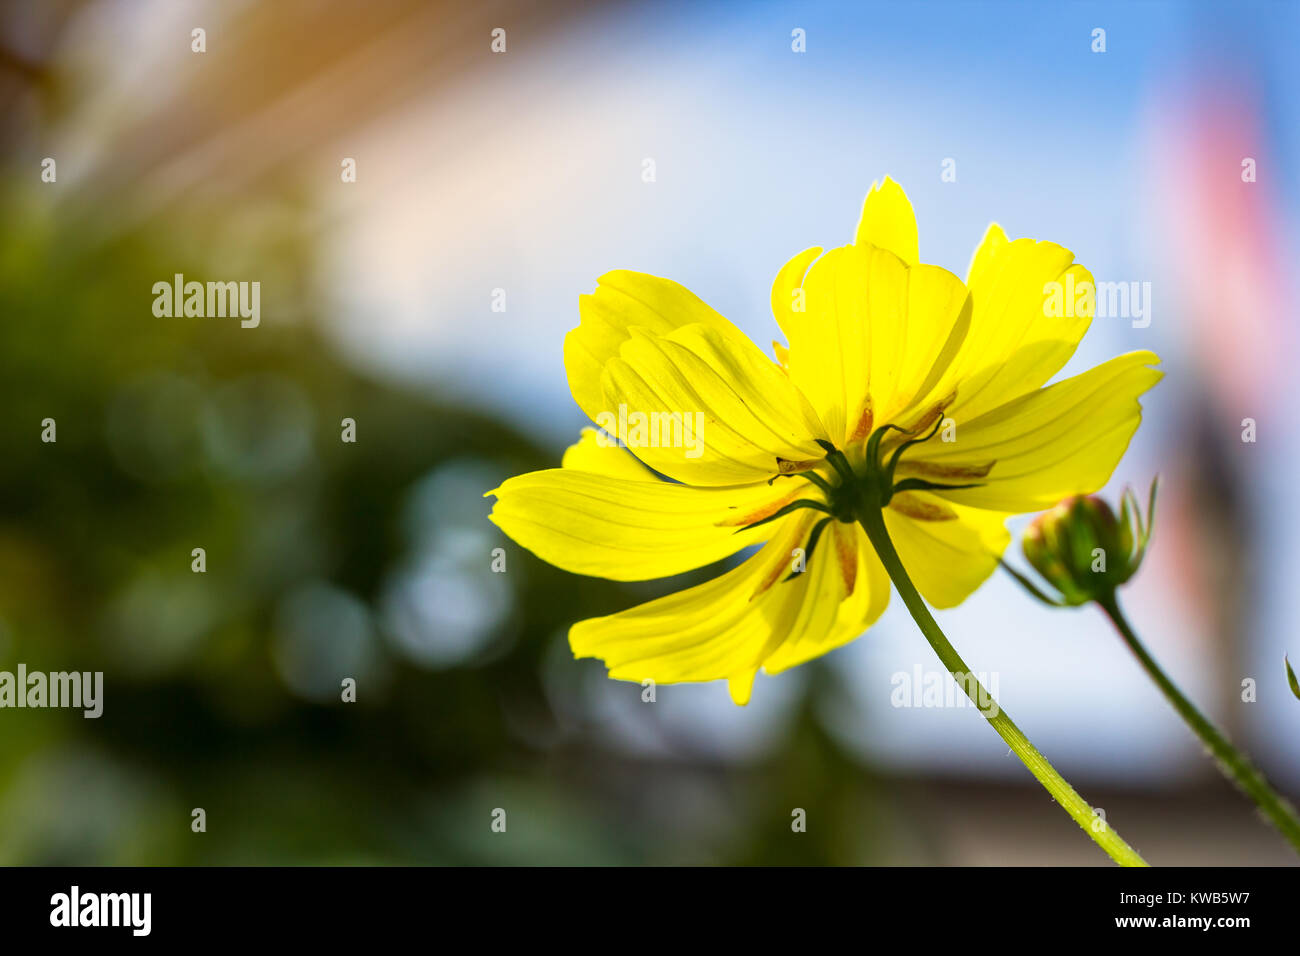 Close up yellow cosmos flower background in garden from countryside close up yellow cosmos flower background in garden from countryside with light and copy space mightylinksfo